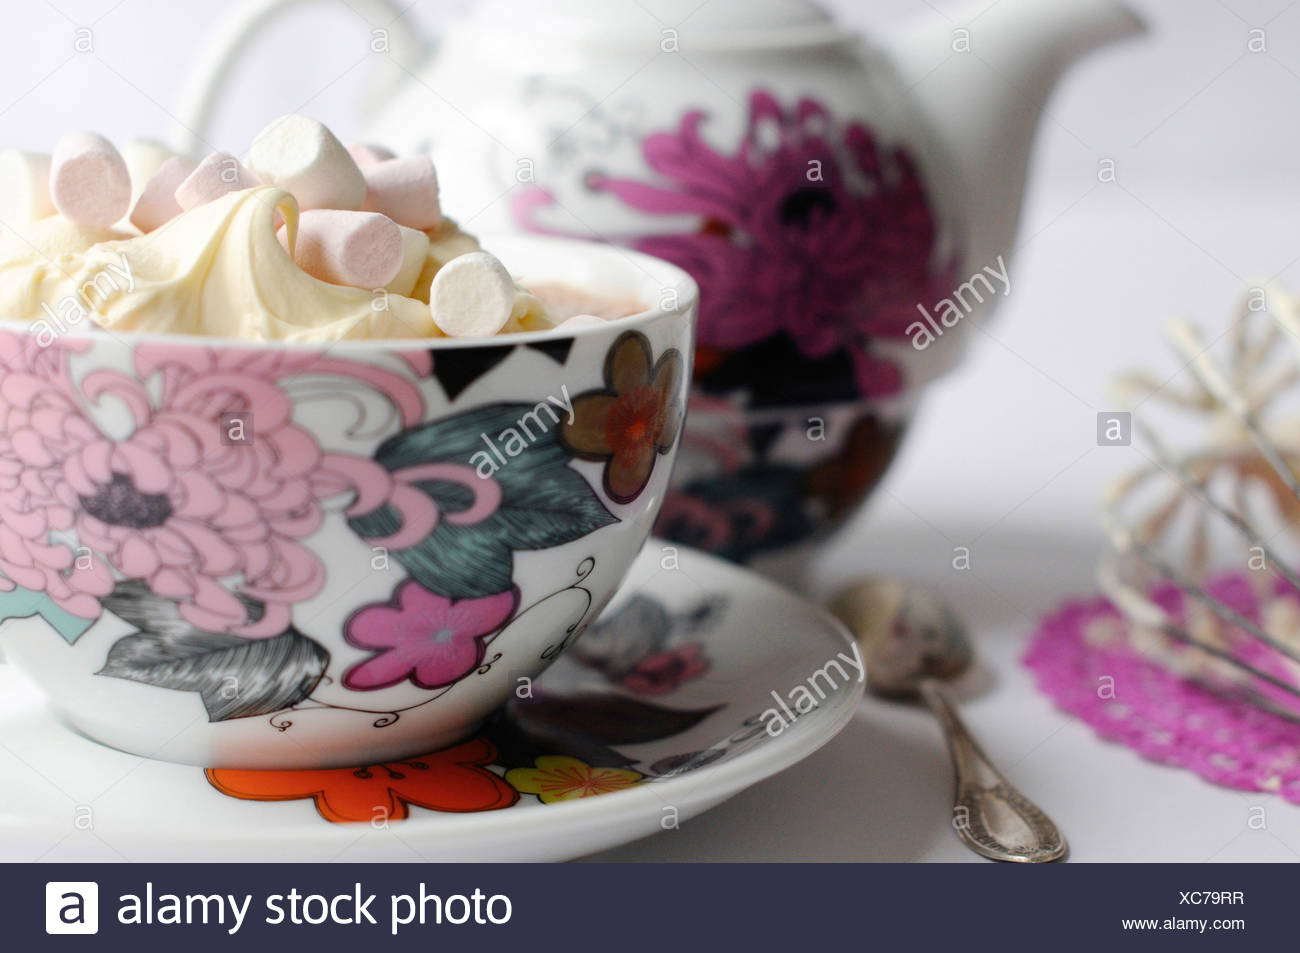 Hot chocolate with whipped cream and mini marshmallows - Stock Image